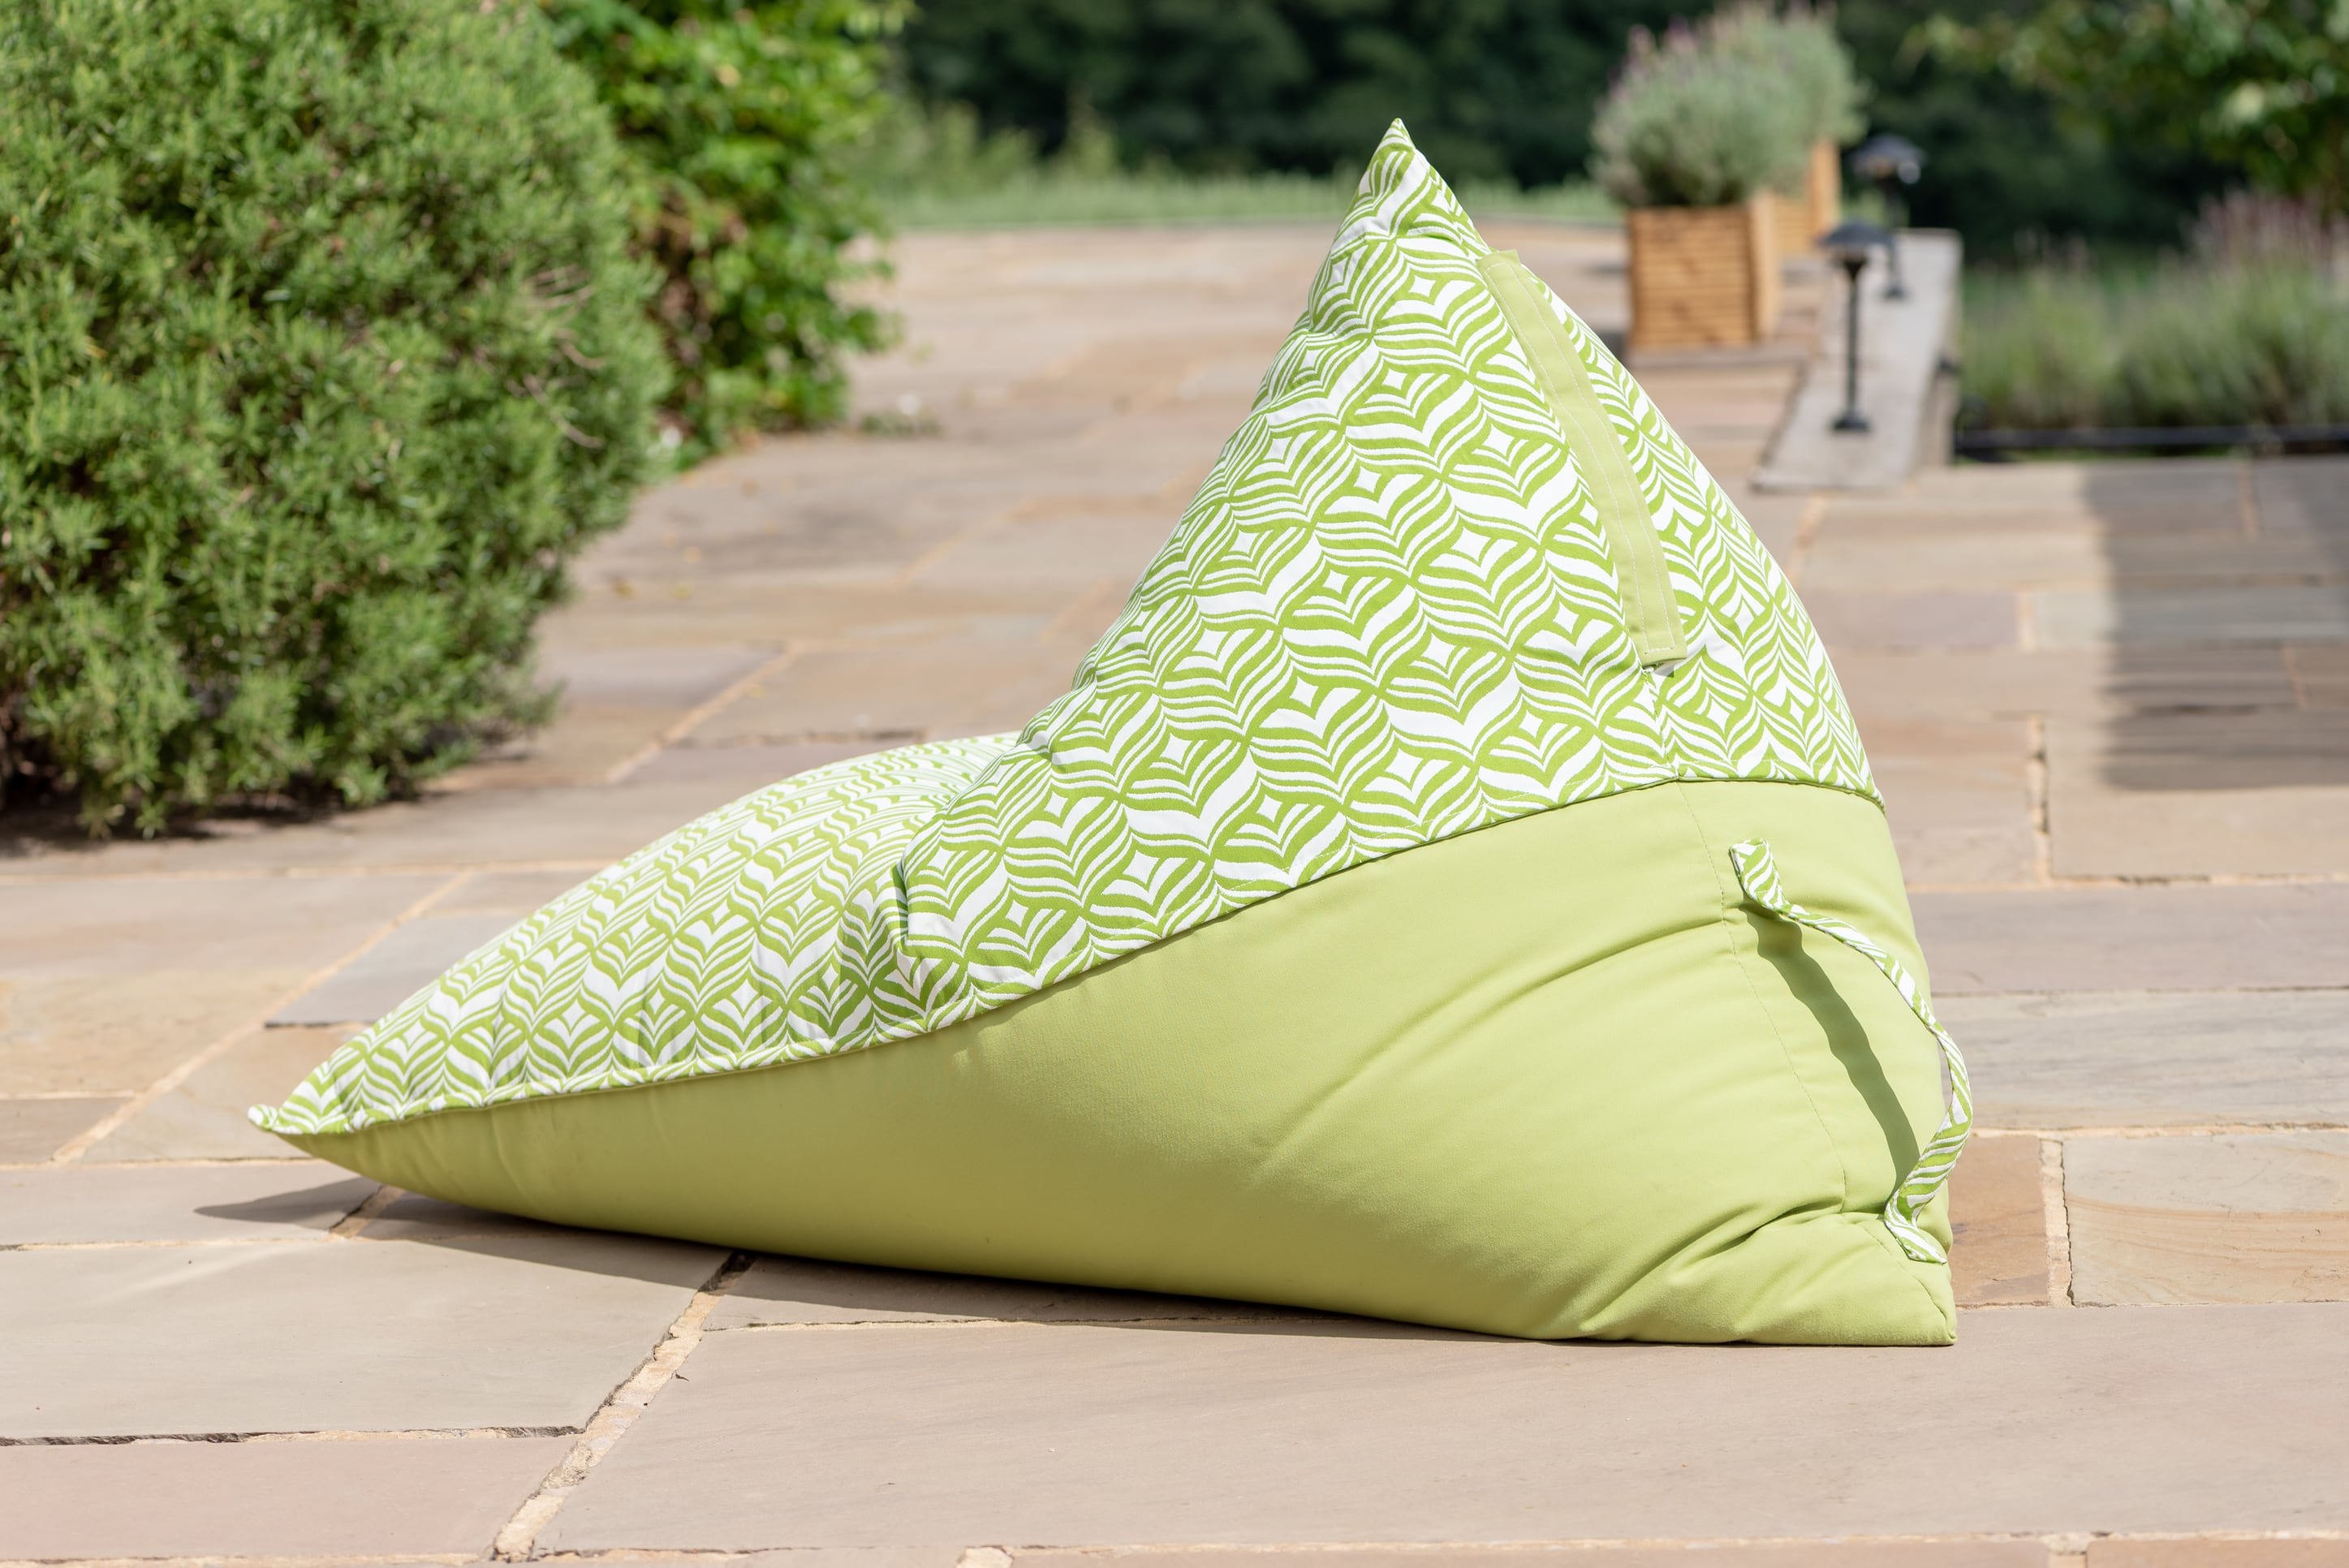 Armadillo Sun bean bag chair in green and white tulip design outdoors